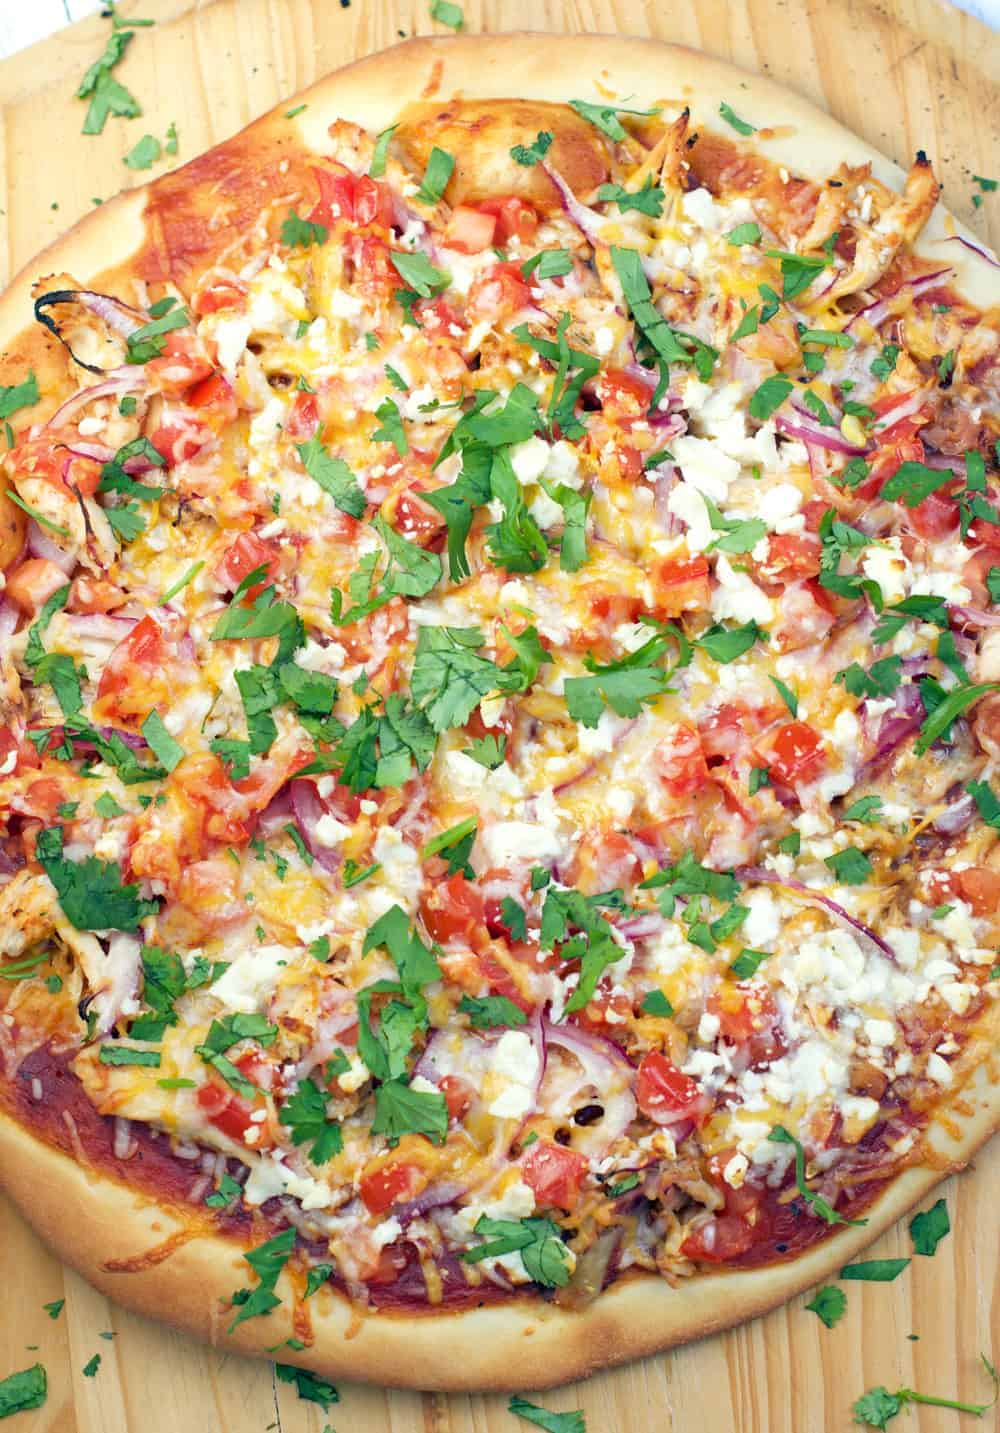 Smoked BBQ Chicken Pizza, made with real smoked chicken, a combination of delicious cheeses, onions, tomatoes, bbq sauce, and topped with fresh cilantro. Perfect for Pizza Night!!!